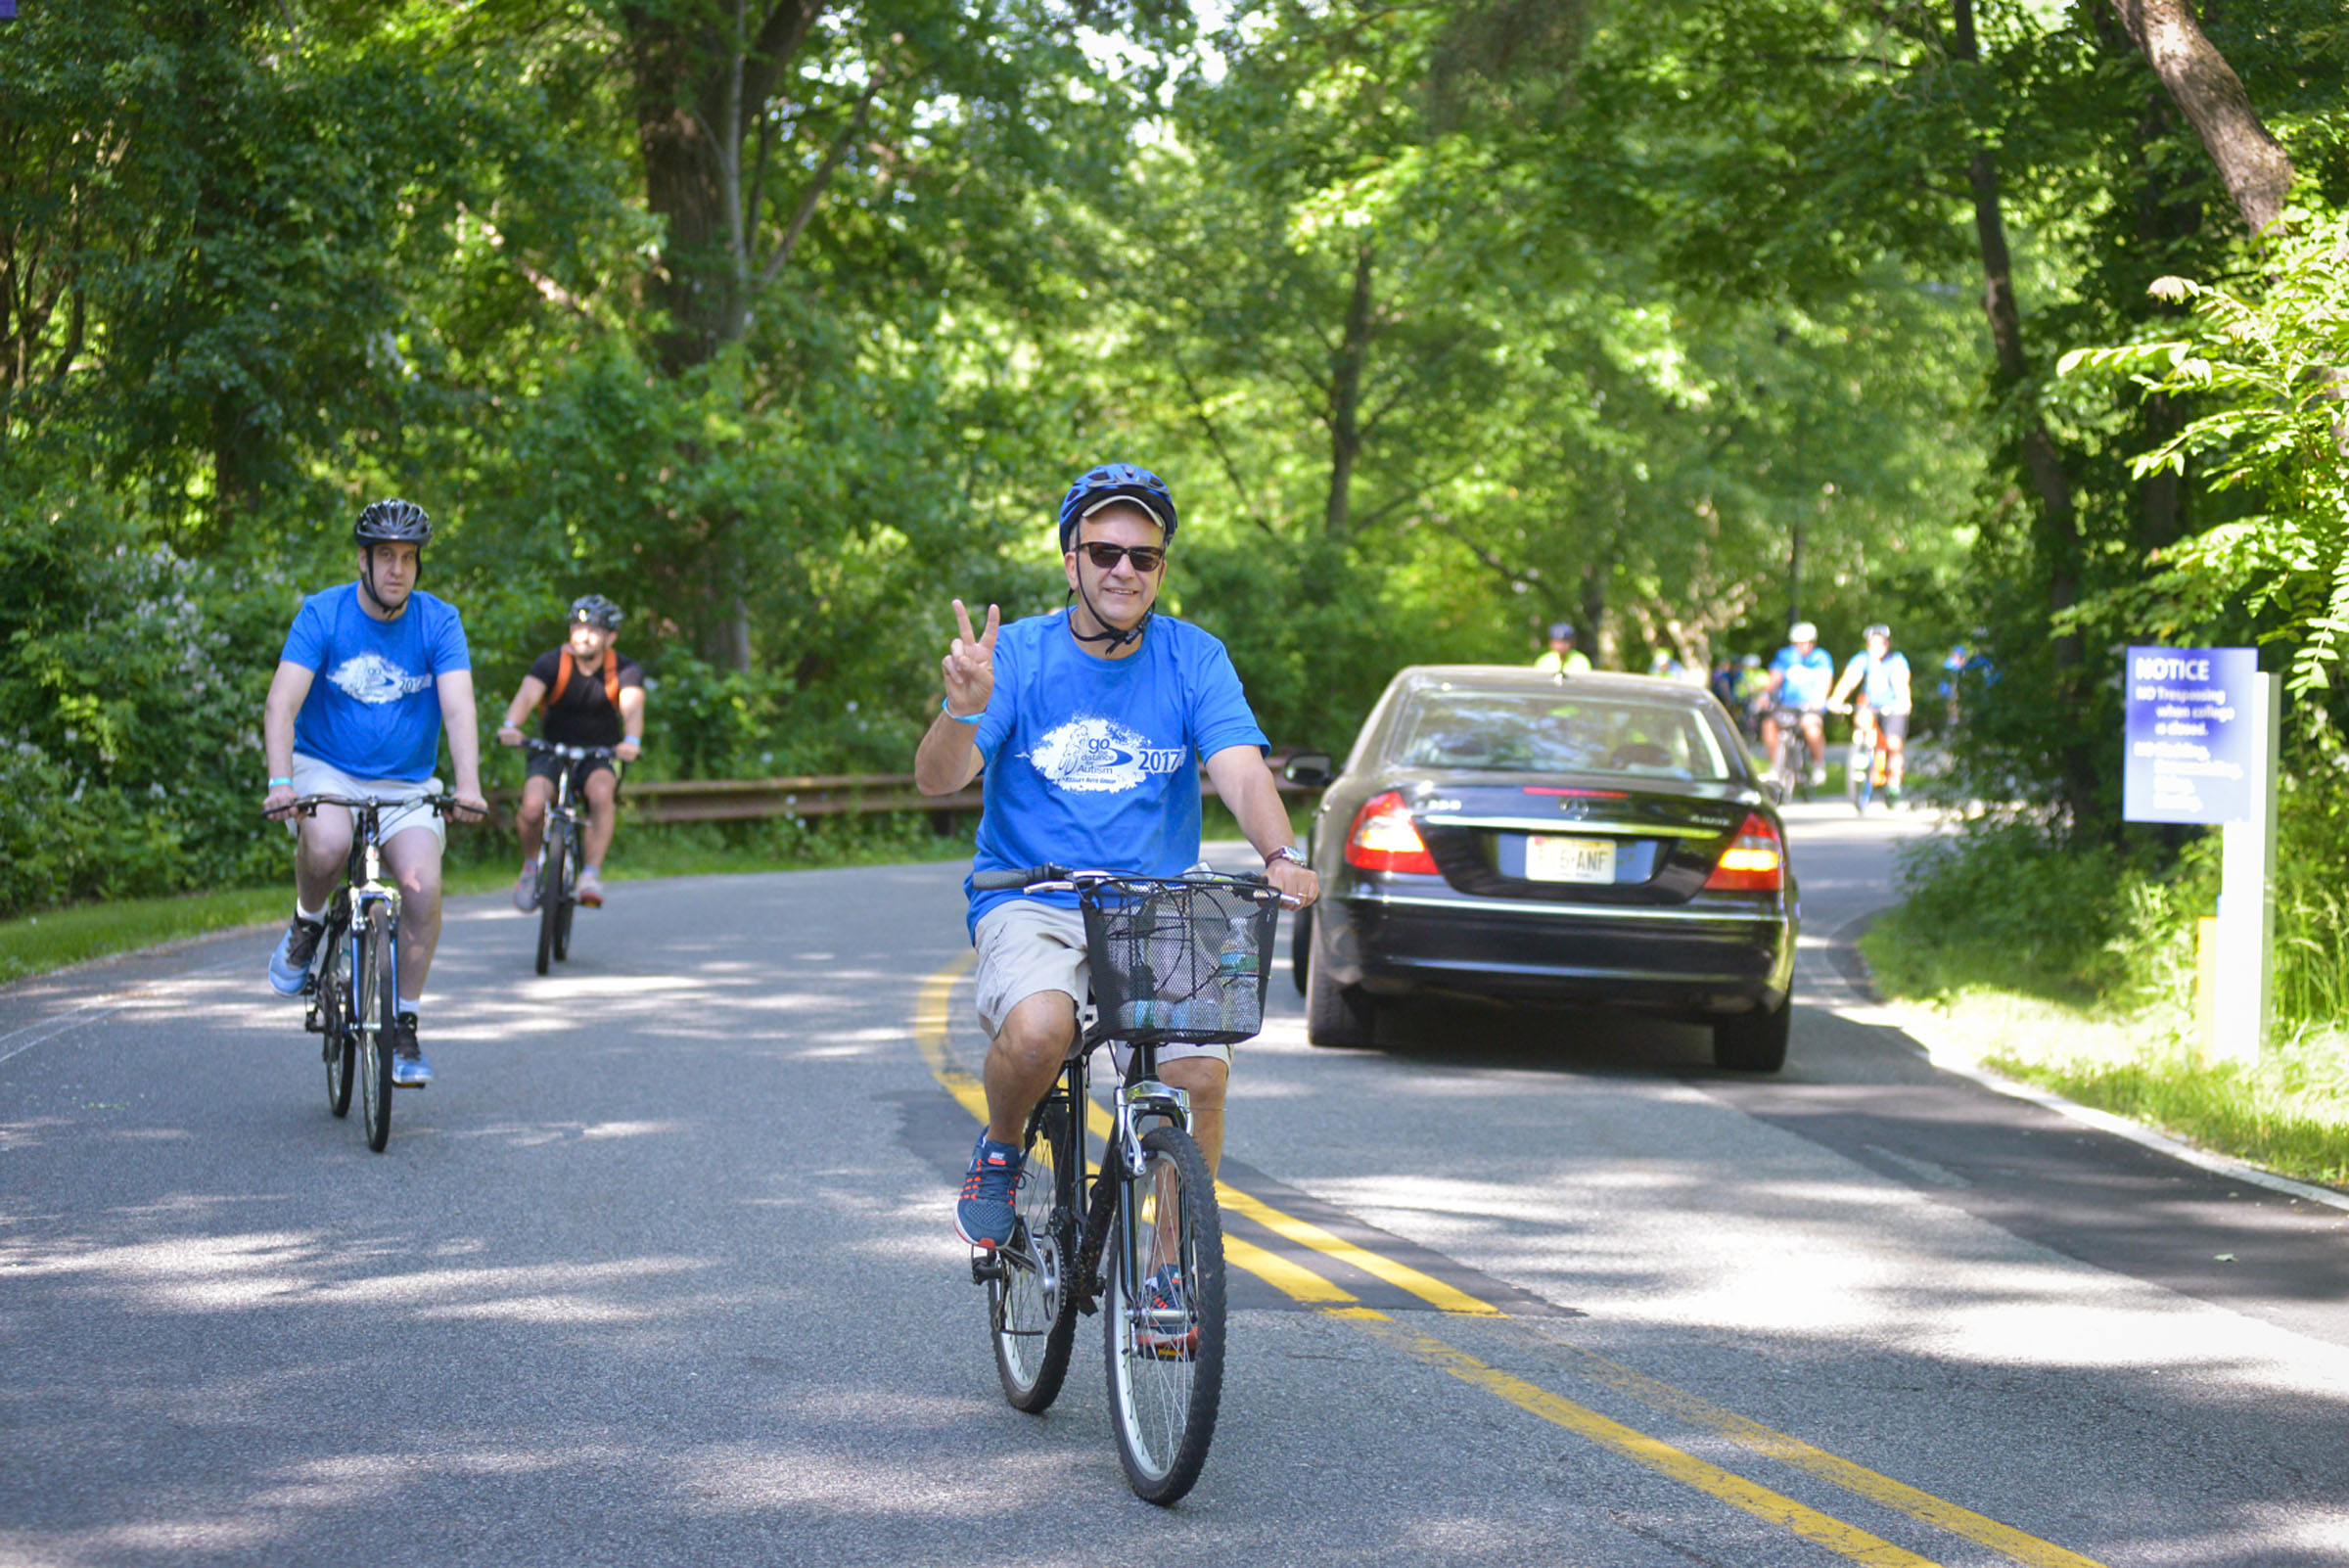 2017-06-04 GTD4A Charity Bike Ride - BCC - Paramus NJ-1931.jpg